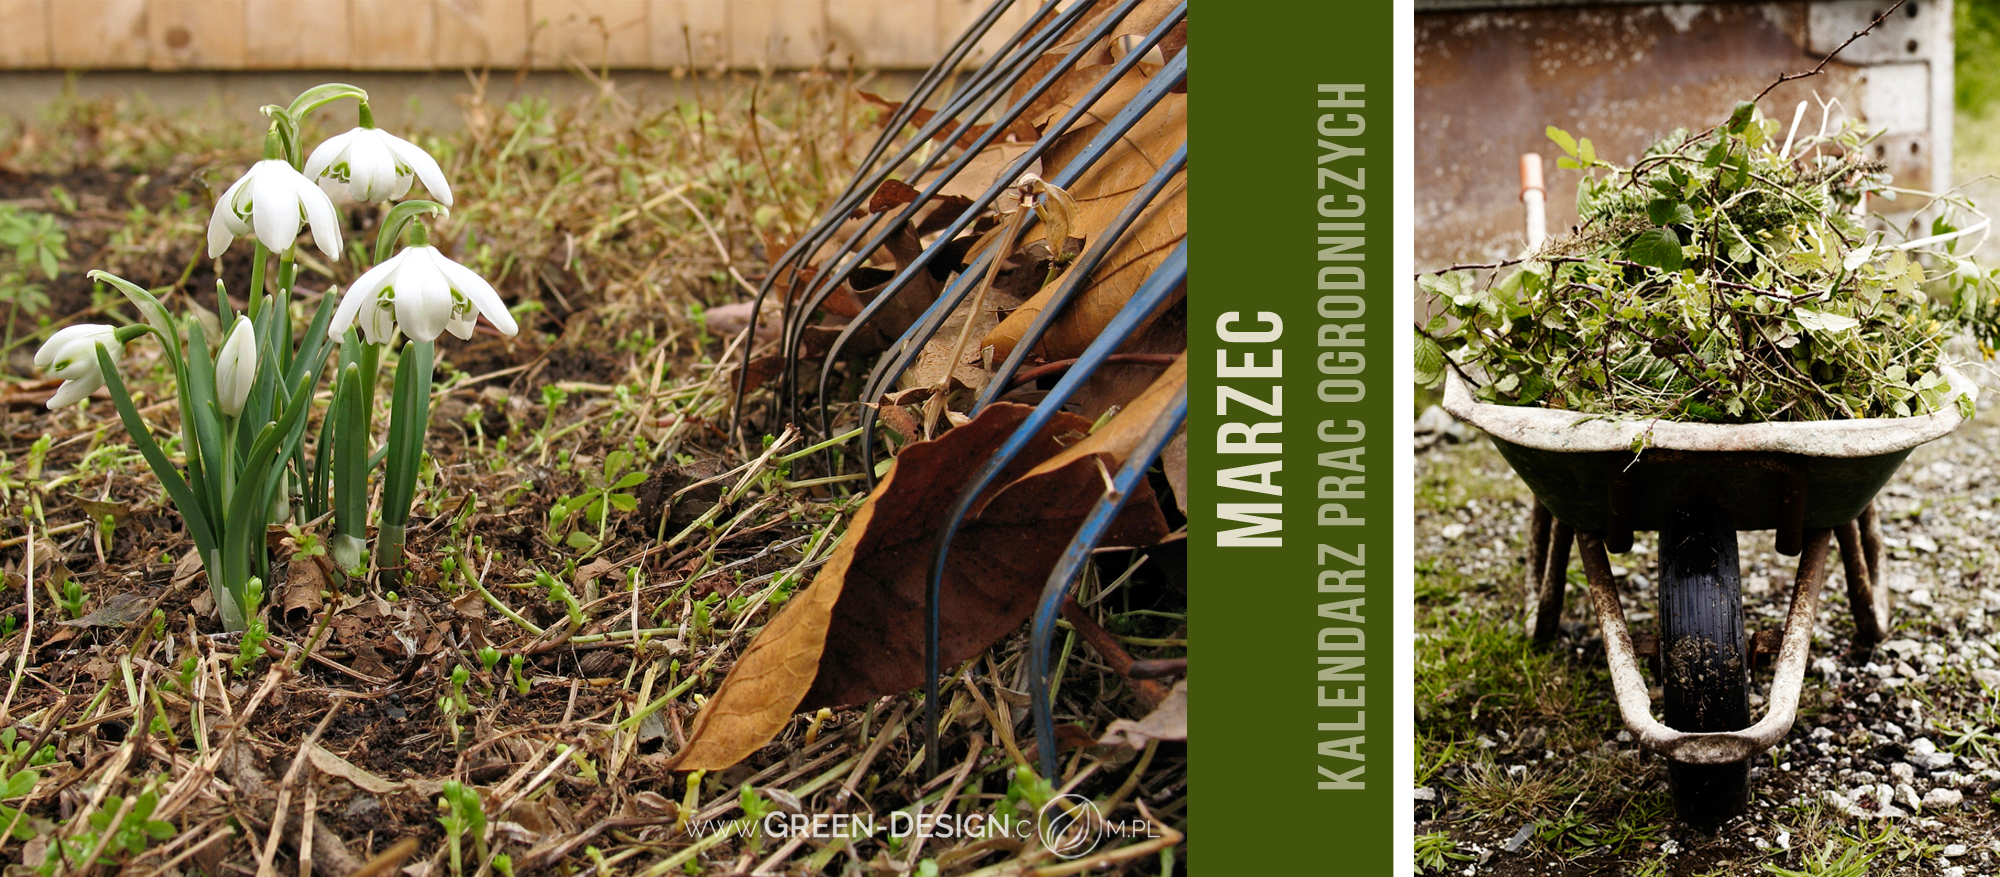 Green-Design-Blog_marzec_cover_photo2